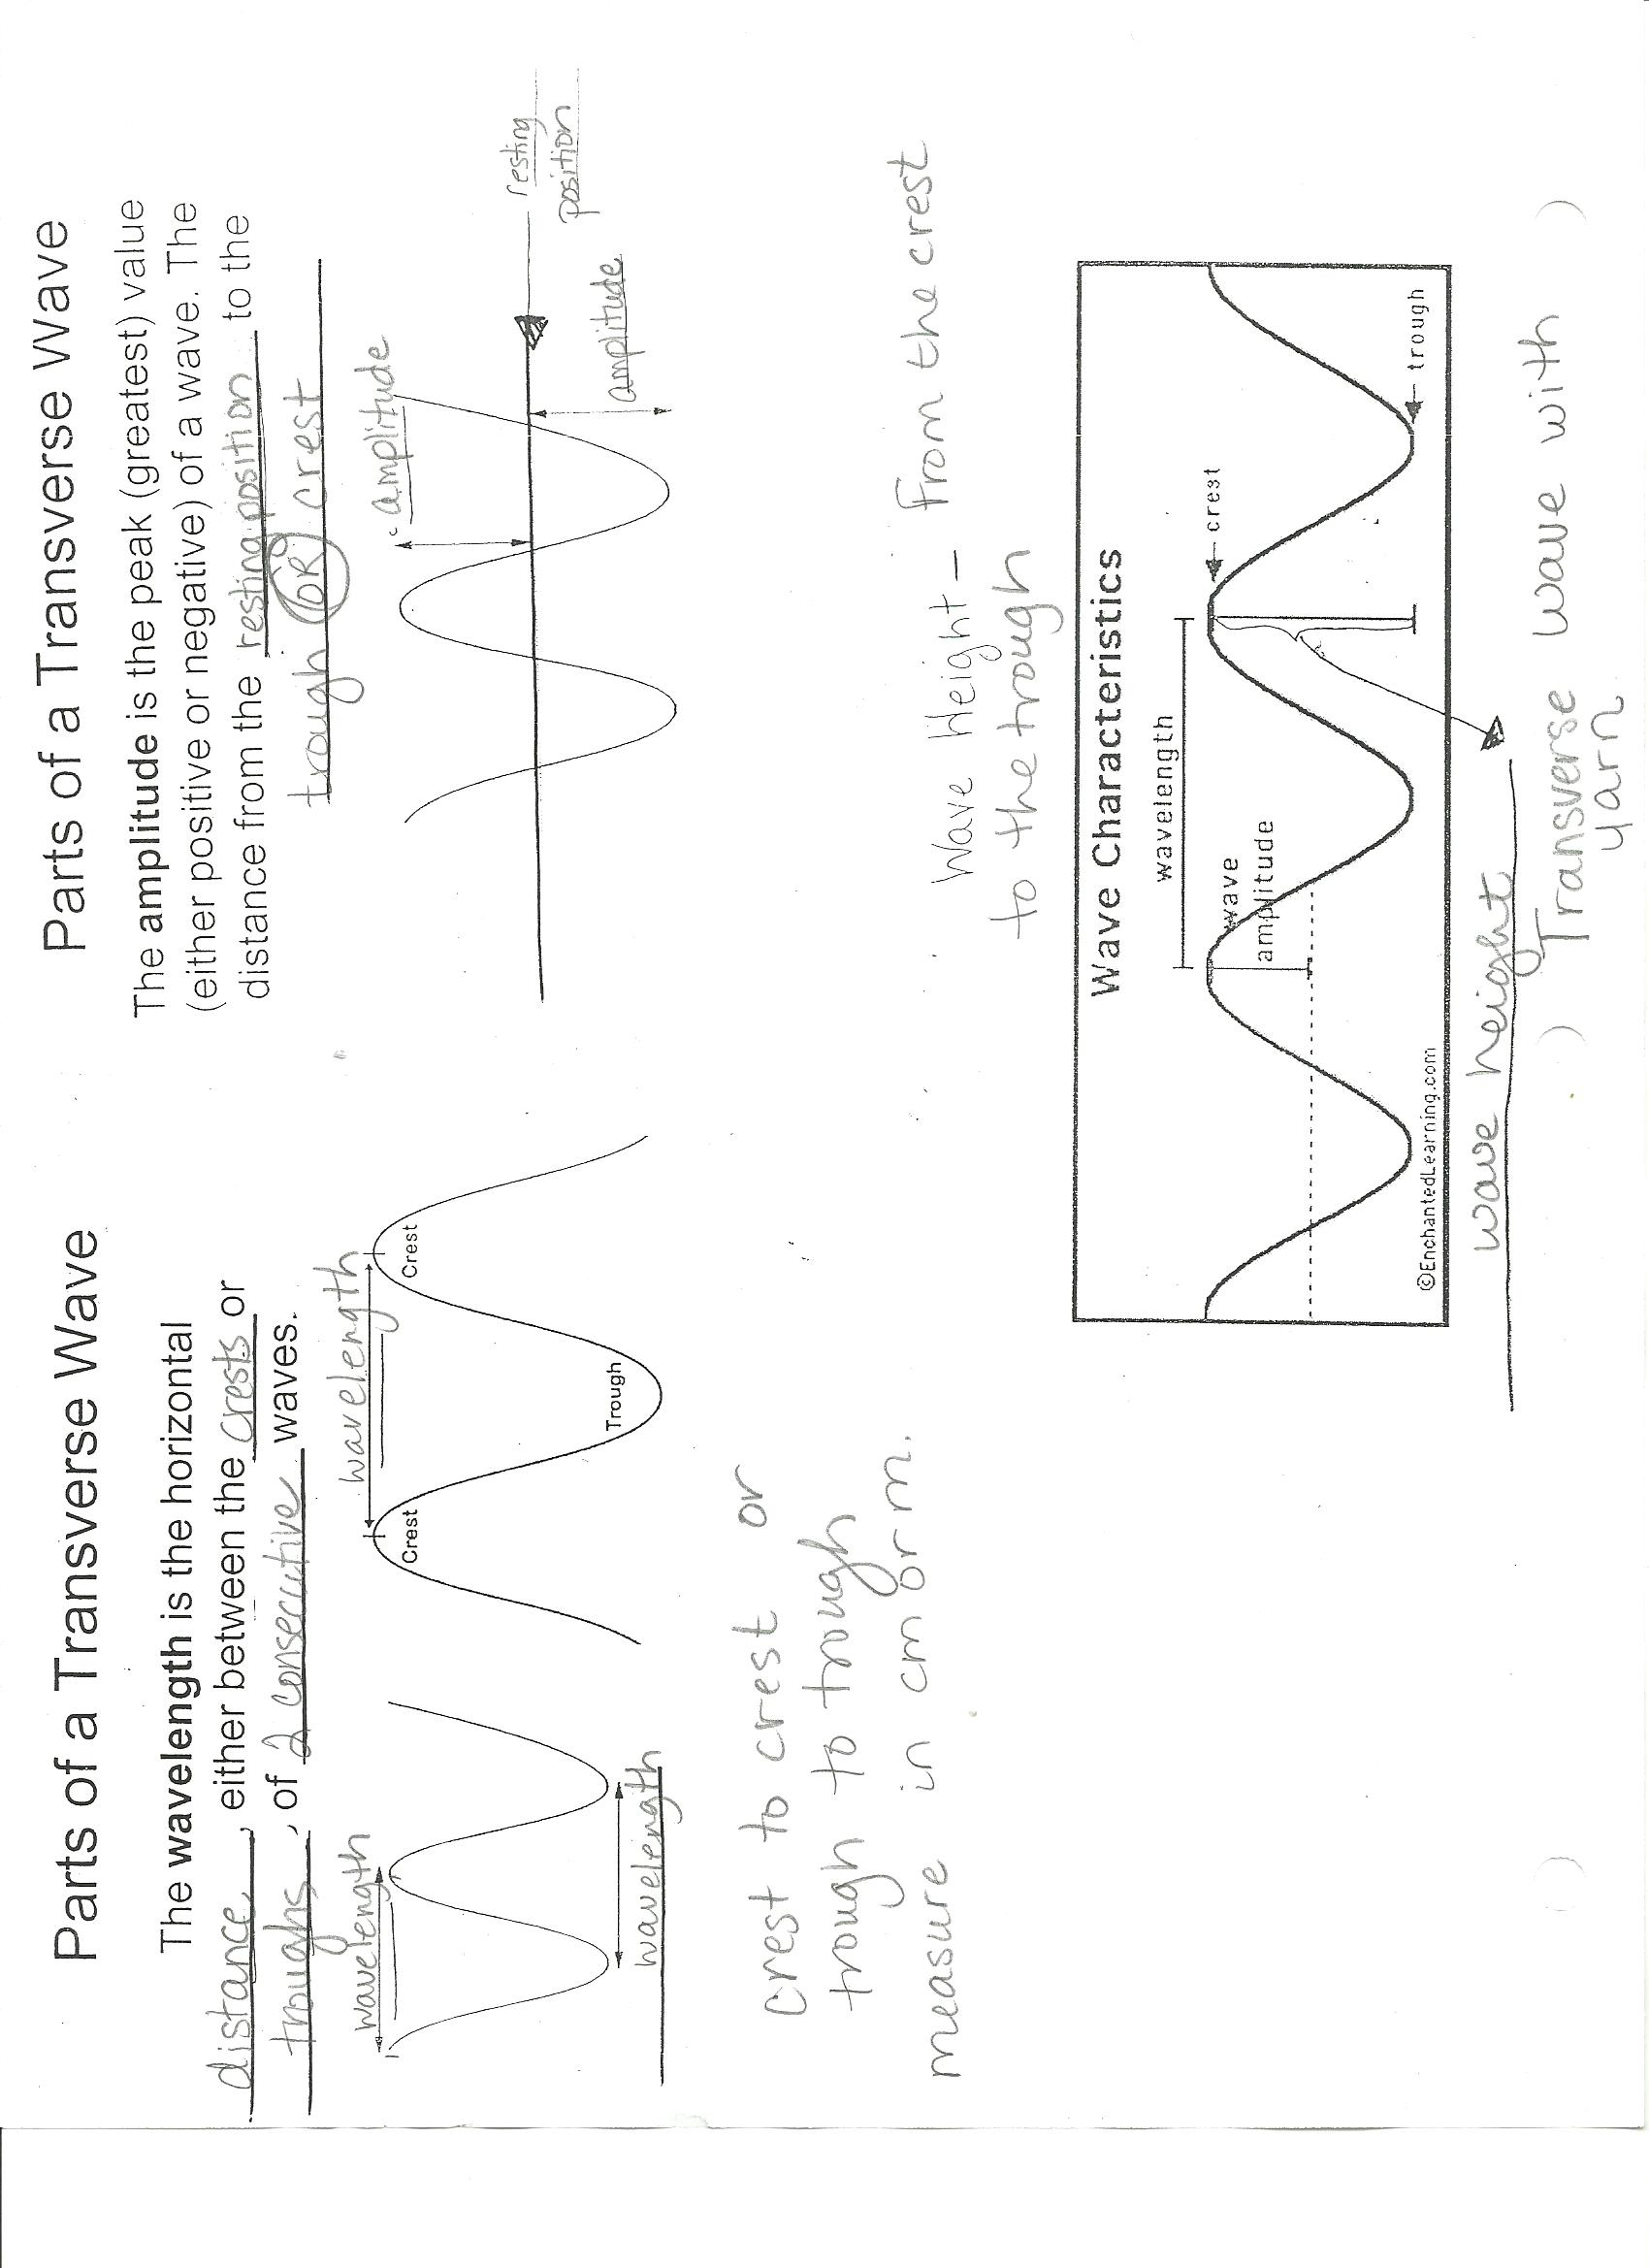 Worksheet Properties Of Waves Worksheet Grass Fedjp Worksheet Study Site